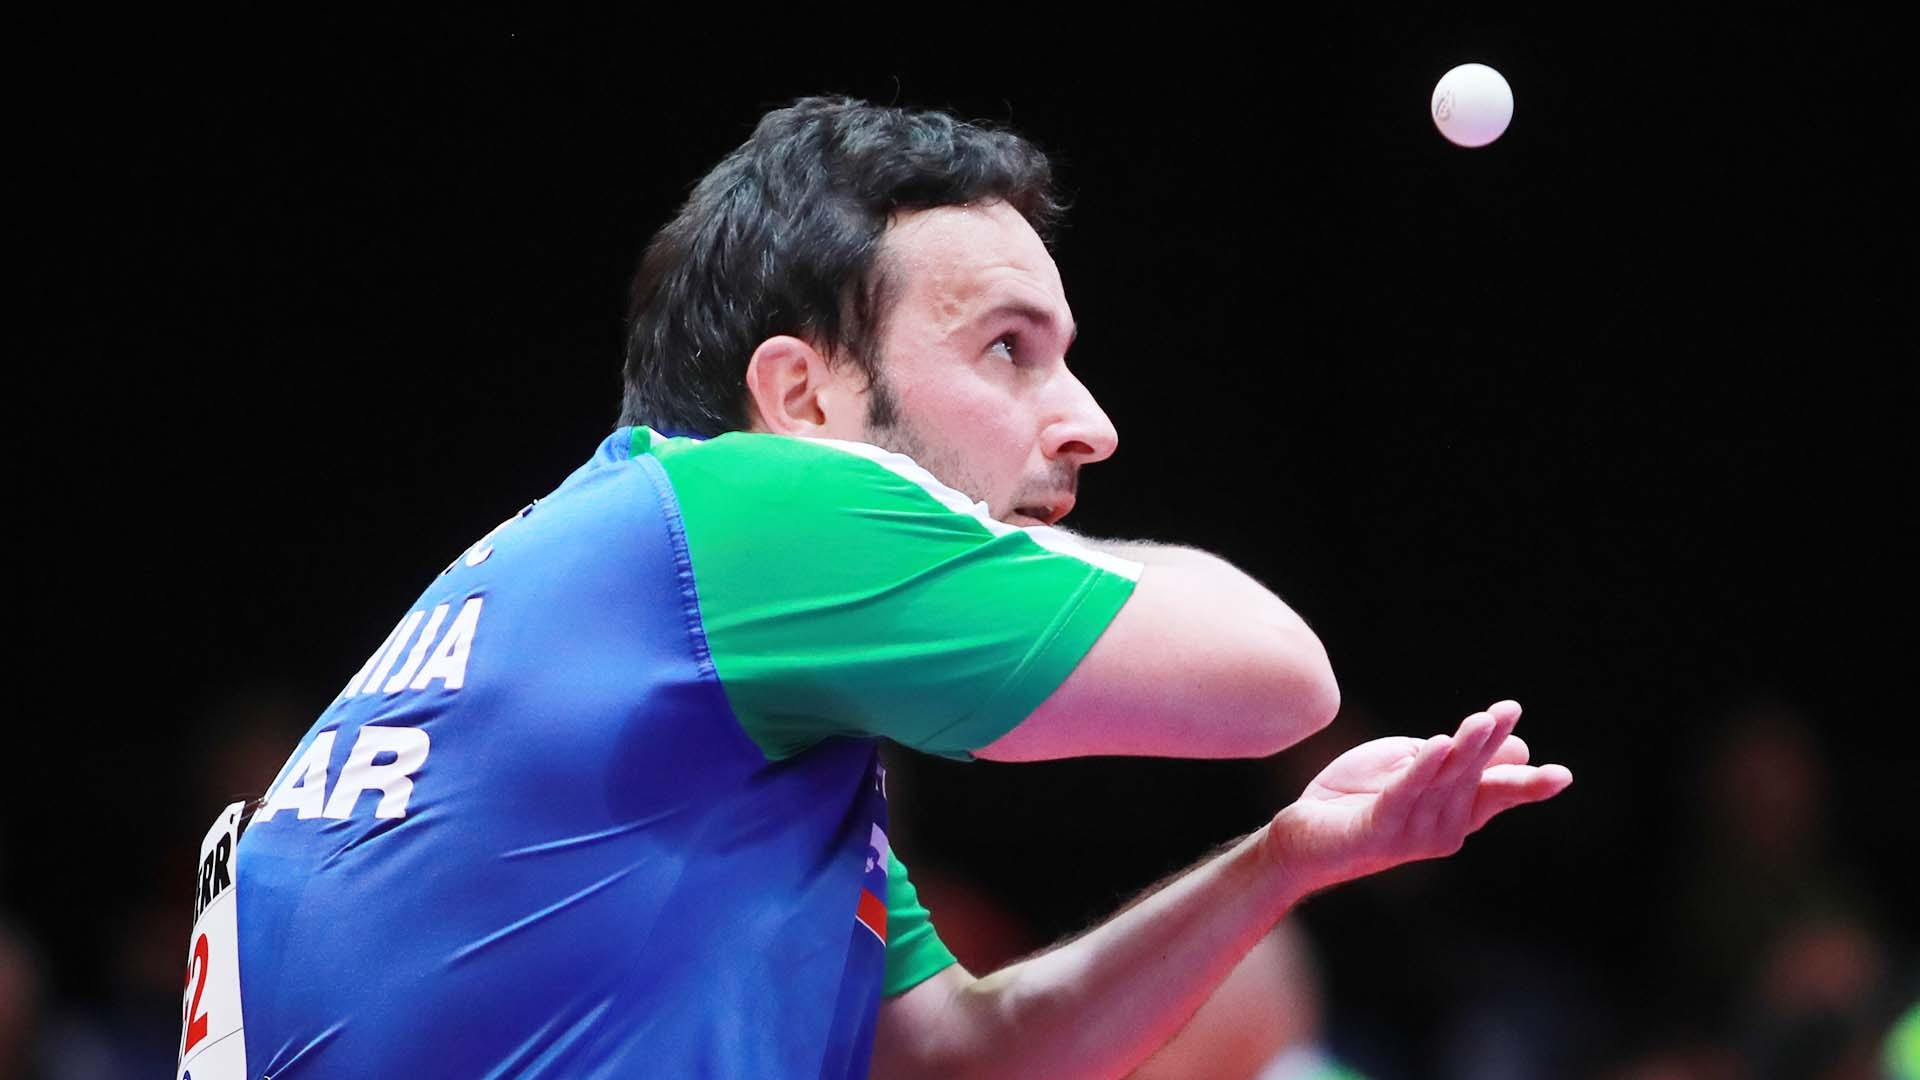 Slovenia guaranteed first-ever medal at ITTF European Team Championships